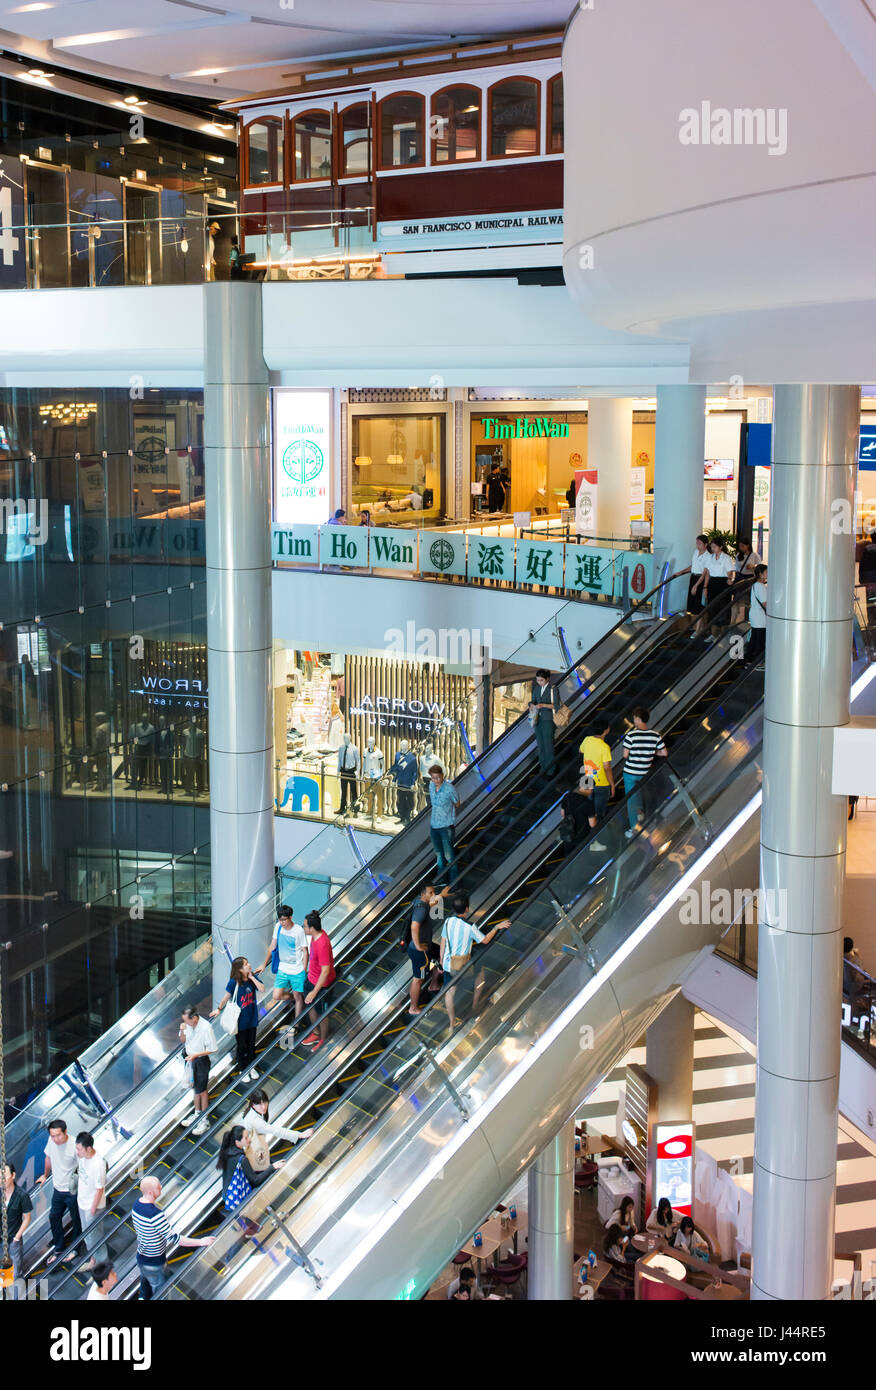 Escalators, people and shops in Siam Center, a large shopping mall in Bangkok. - Stock Image